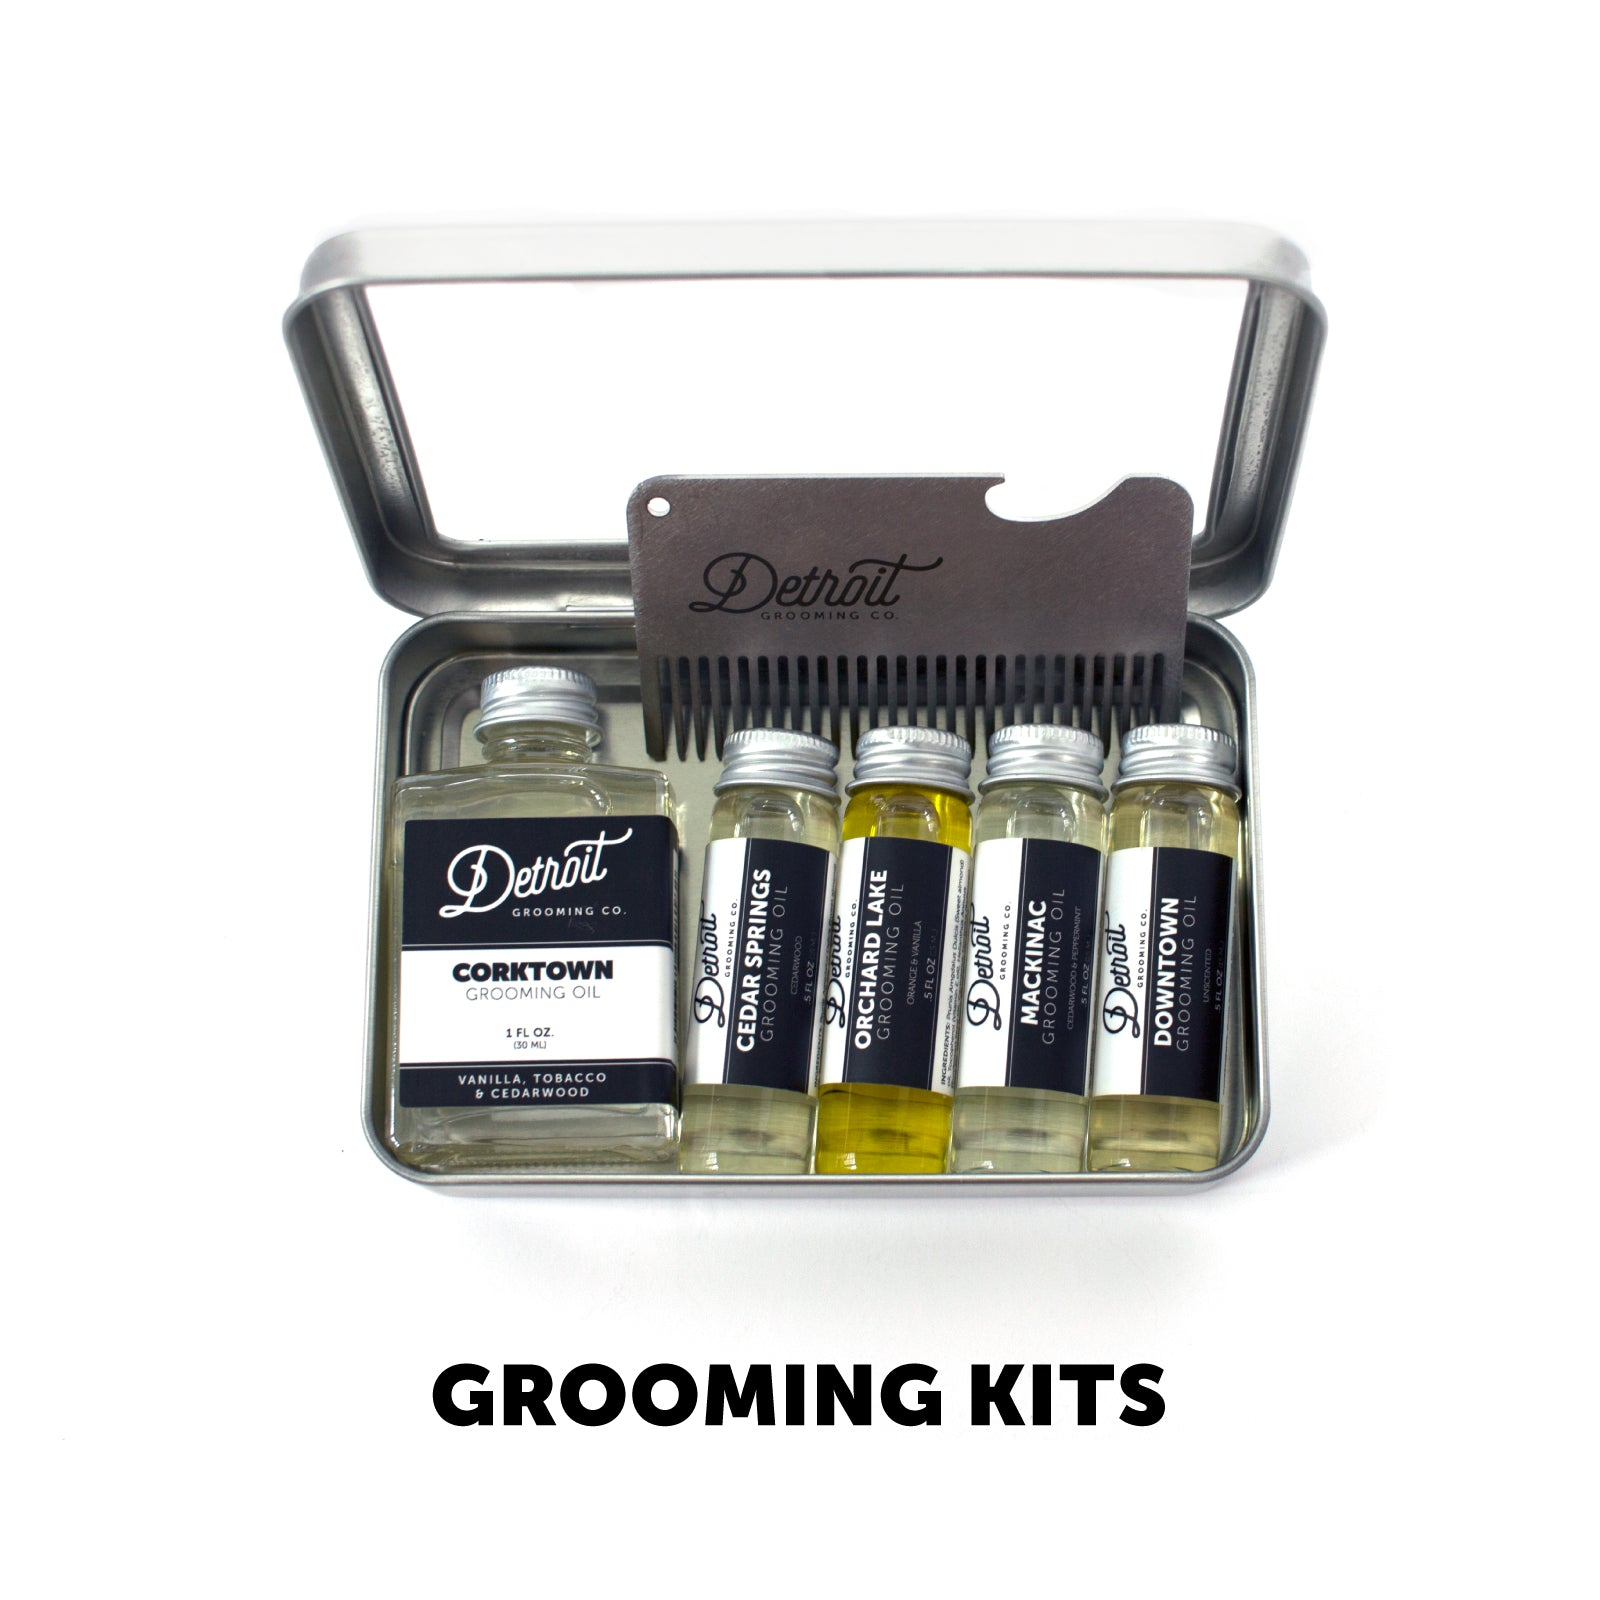 Beard Grooming Kits, Gifts, and Gift Sets